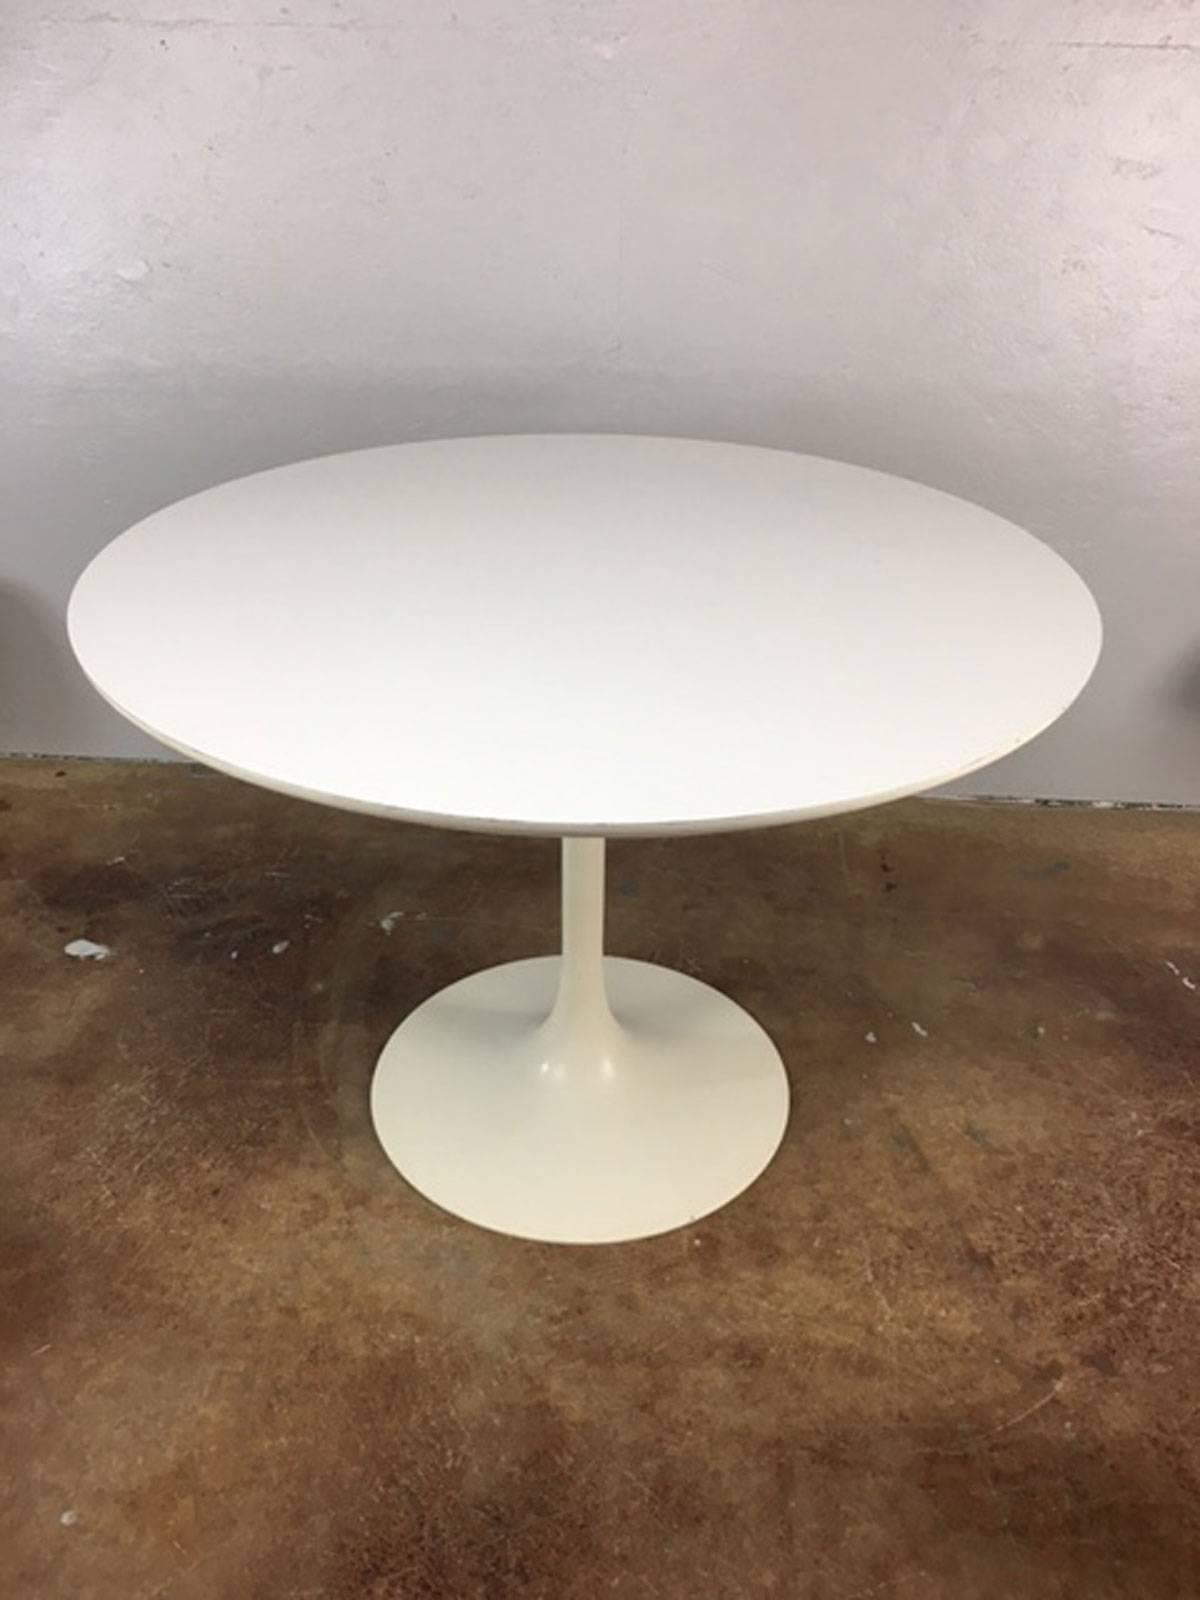 Beau Mid Century Modern Saarinen Style Tulip Table And Propeller Dining Chairs  By Burke For Sale